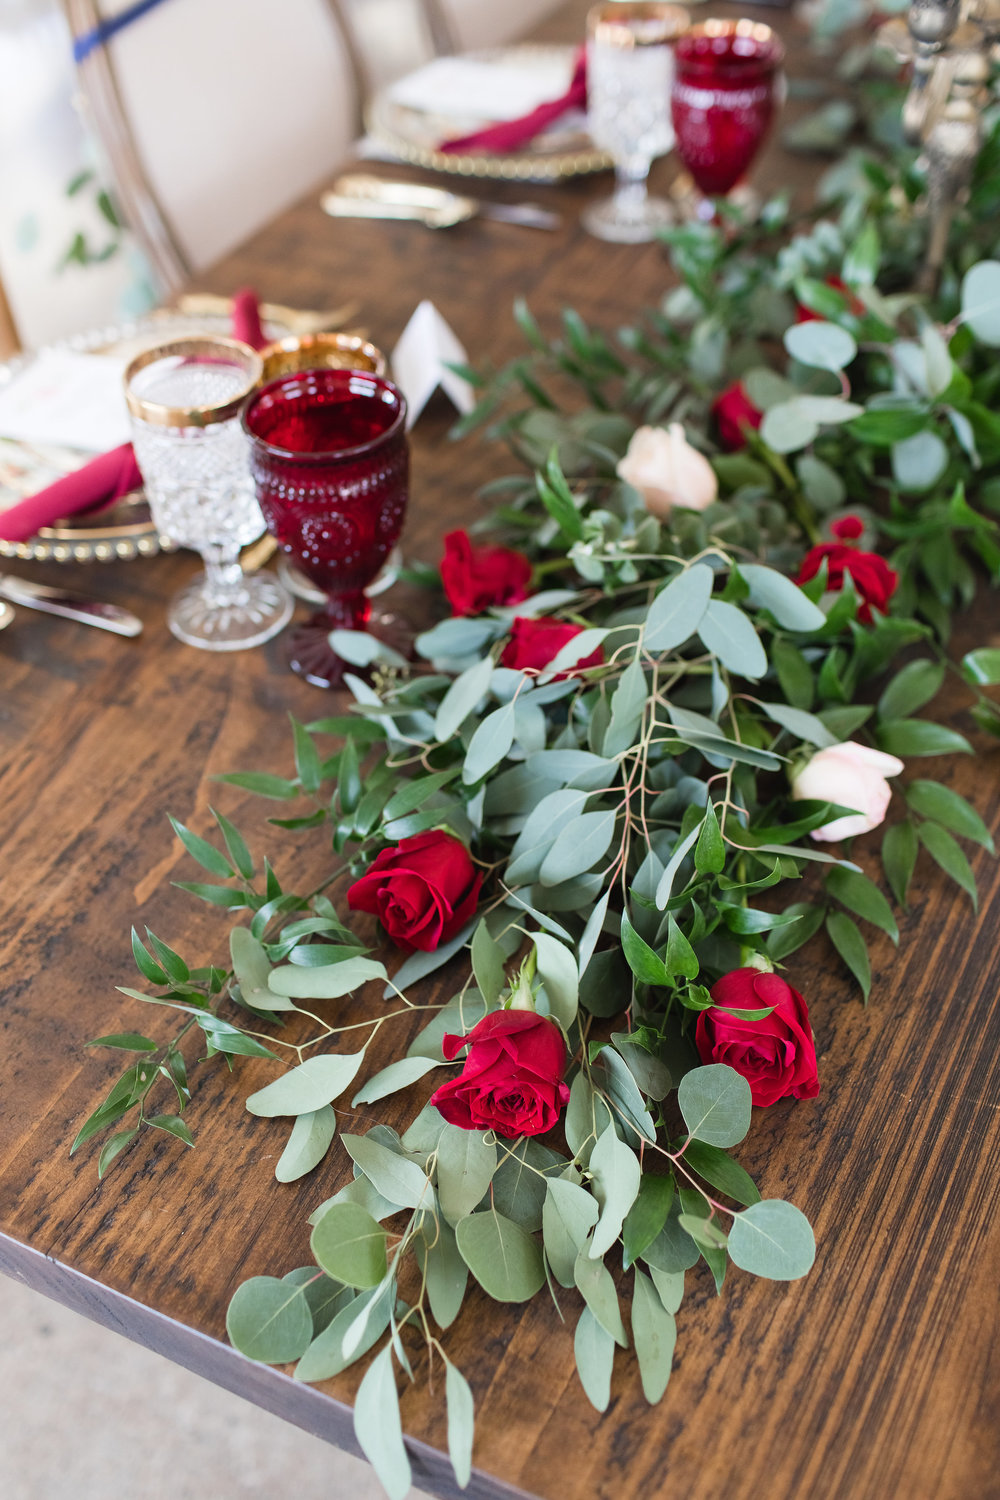 It wouldn't be a Beauty and the Beast Inspired editorial without heaps of lush roses. This gorgeous garland by A Wedding in Silk Floral Design incorporates Italian Ruscus, Eucalyptus, Sweet Olive, Buplurum and Roses.